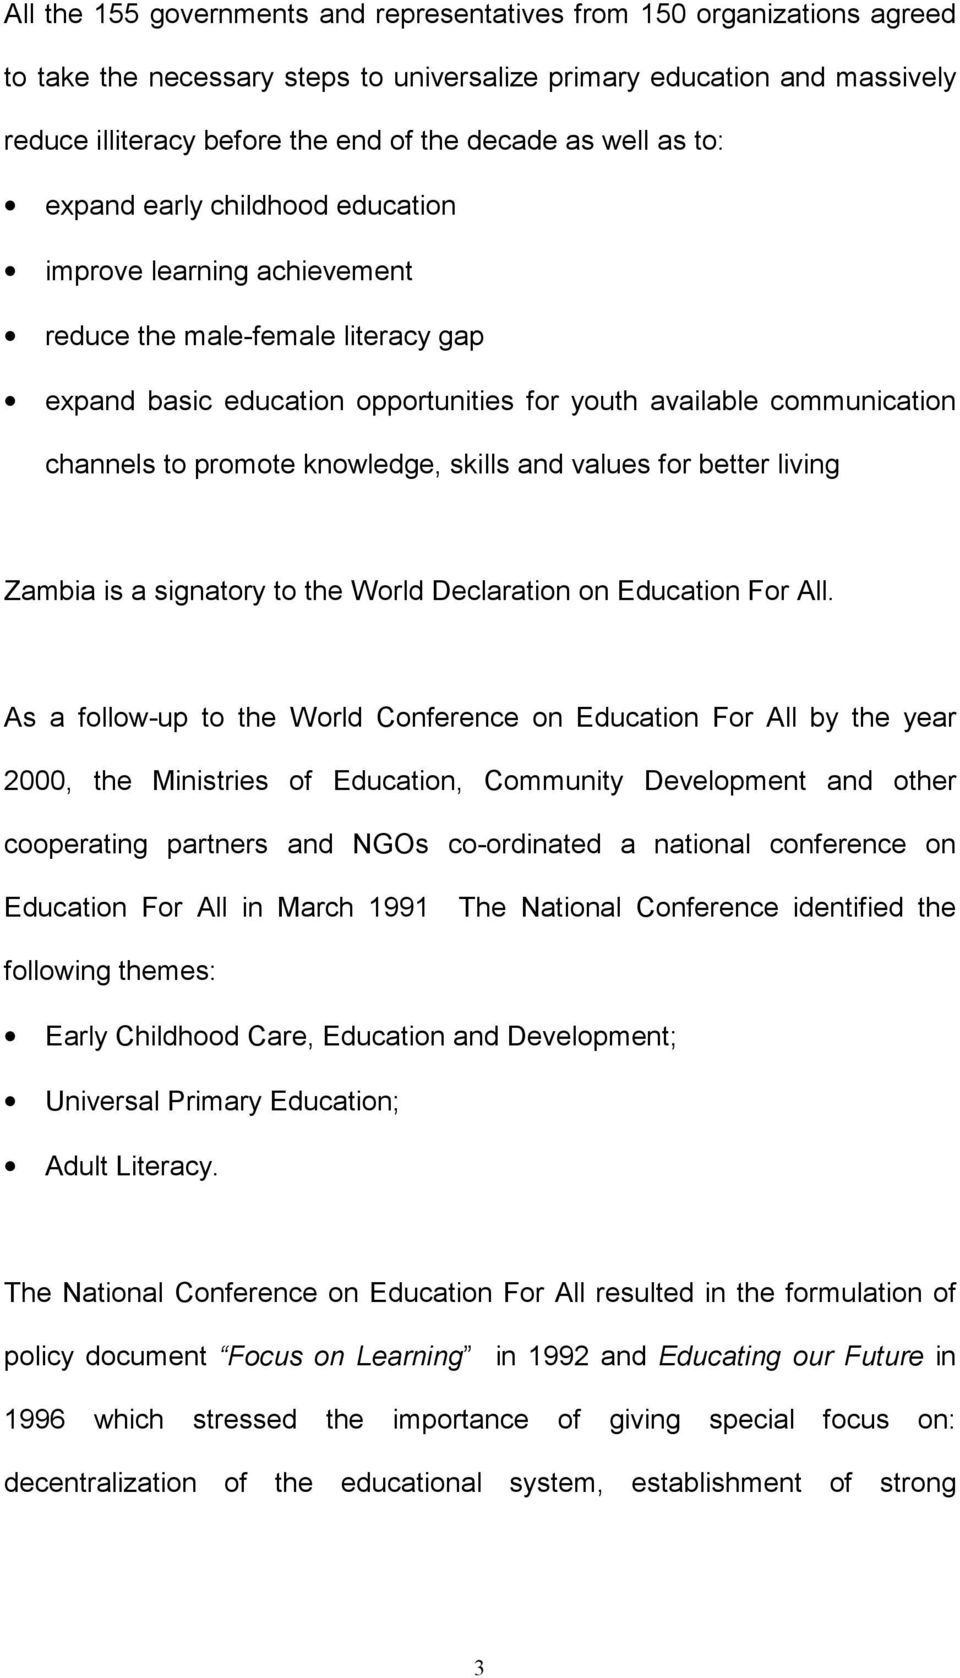 promote knowledge, skills and values for better living Zambia is a signatory to the World Declaration on Education For All.